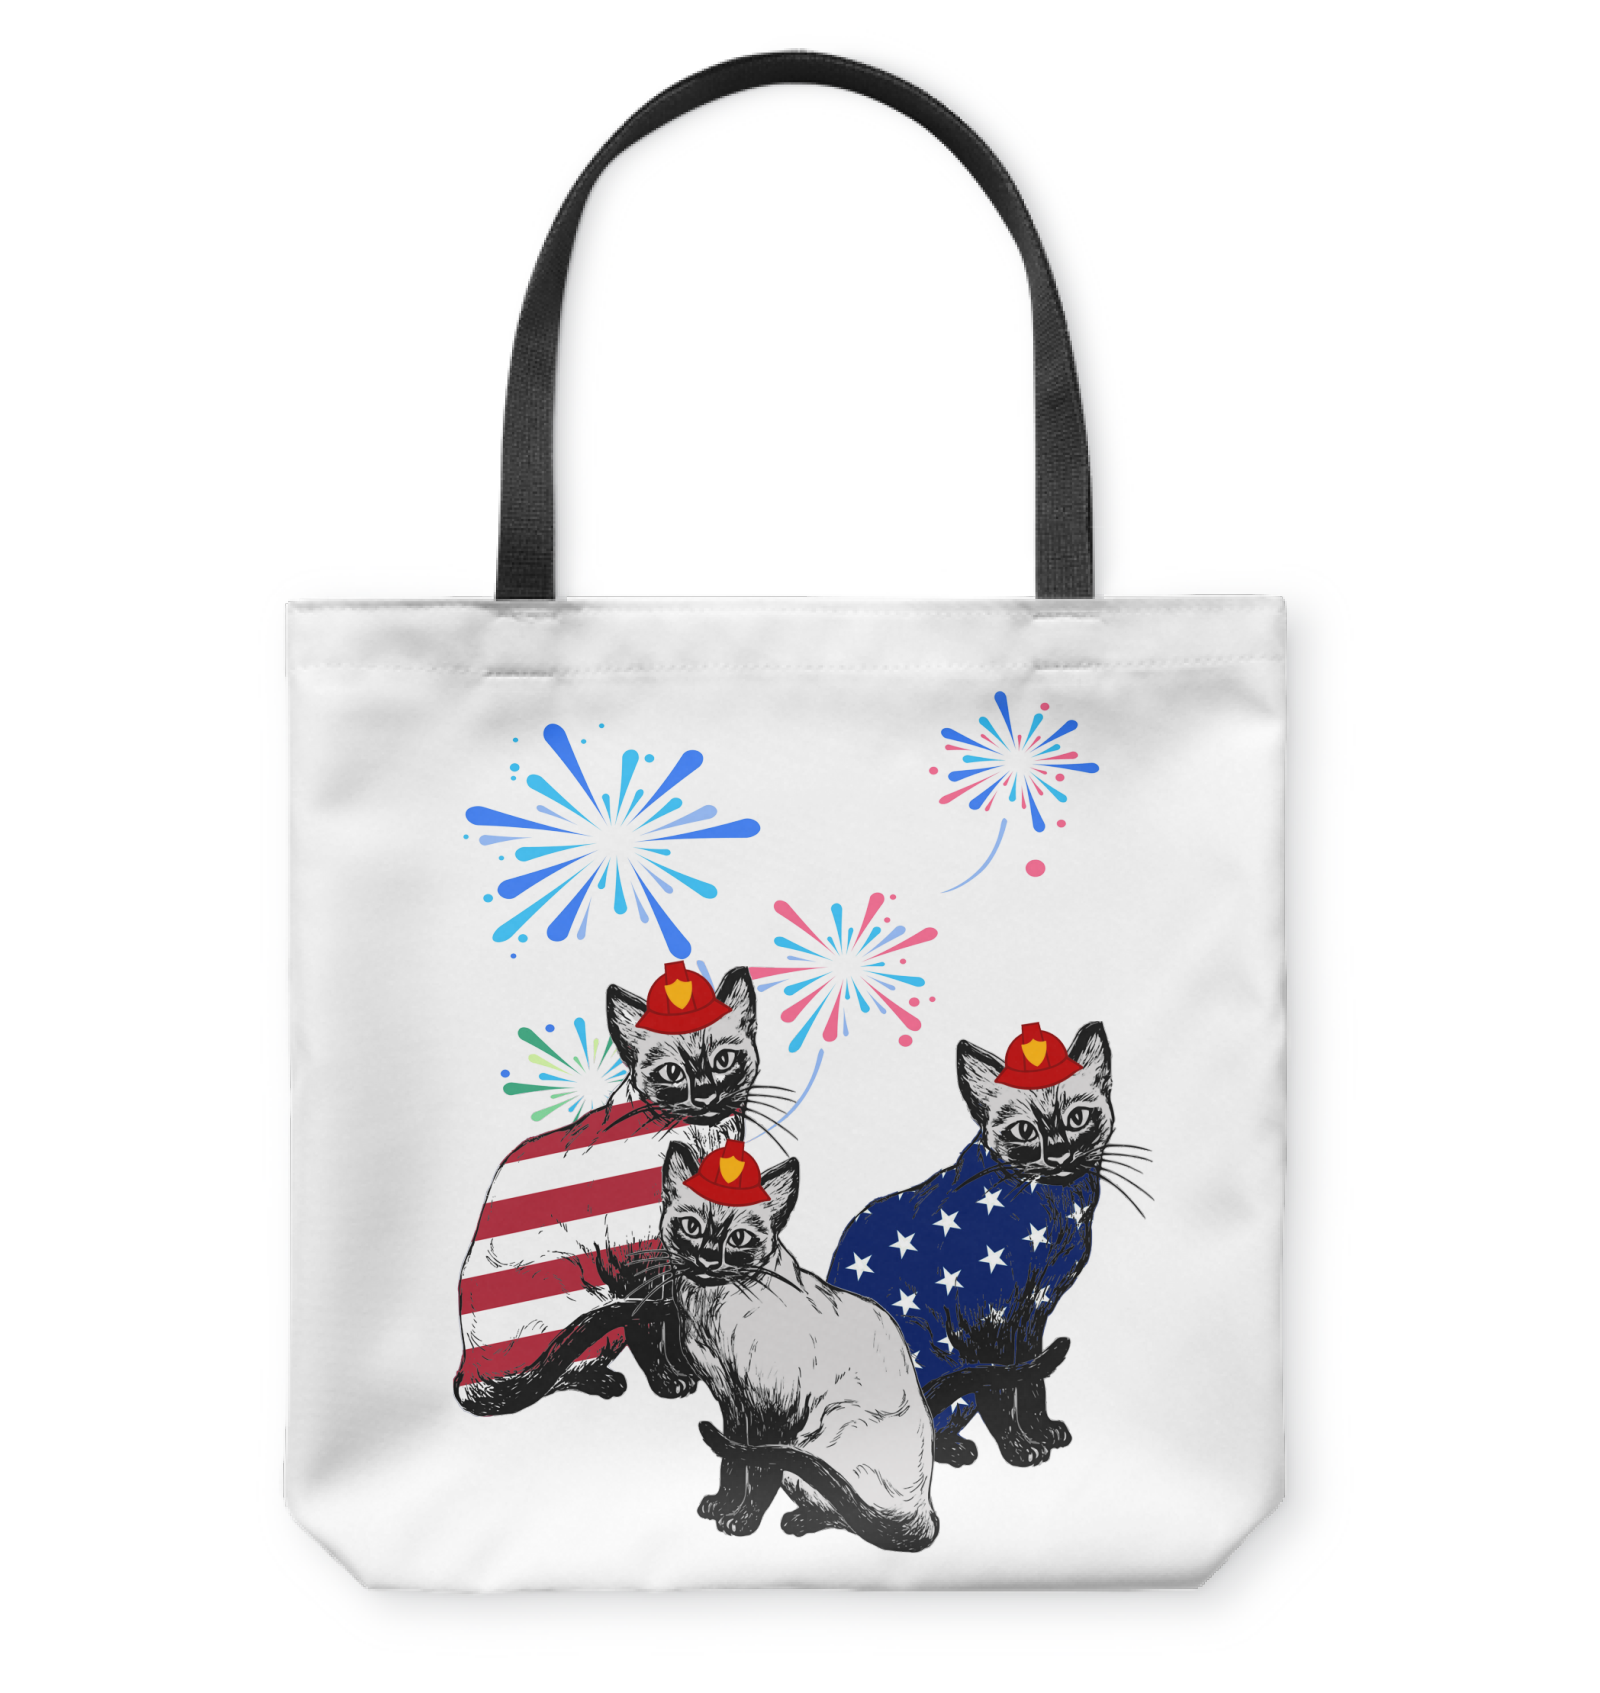 VIRA TOTE BAG FOR WHO LOVES CAT AND FIREFIGHTER